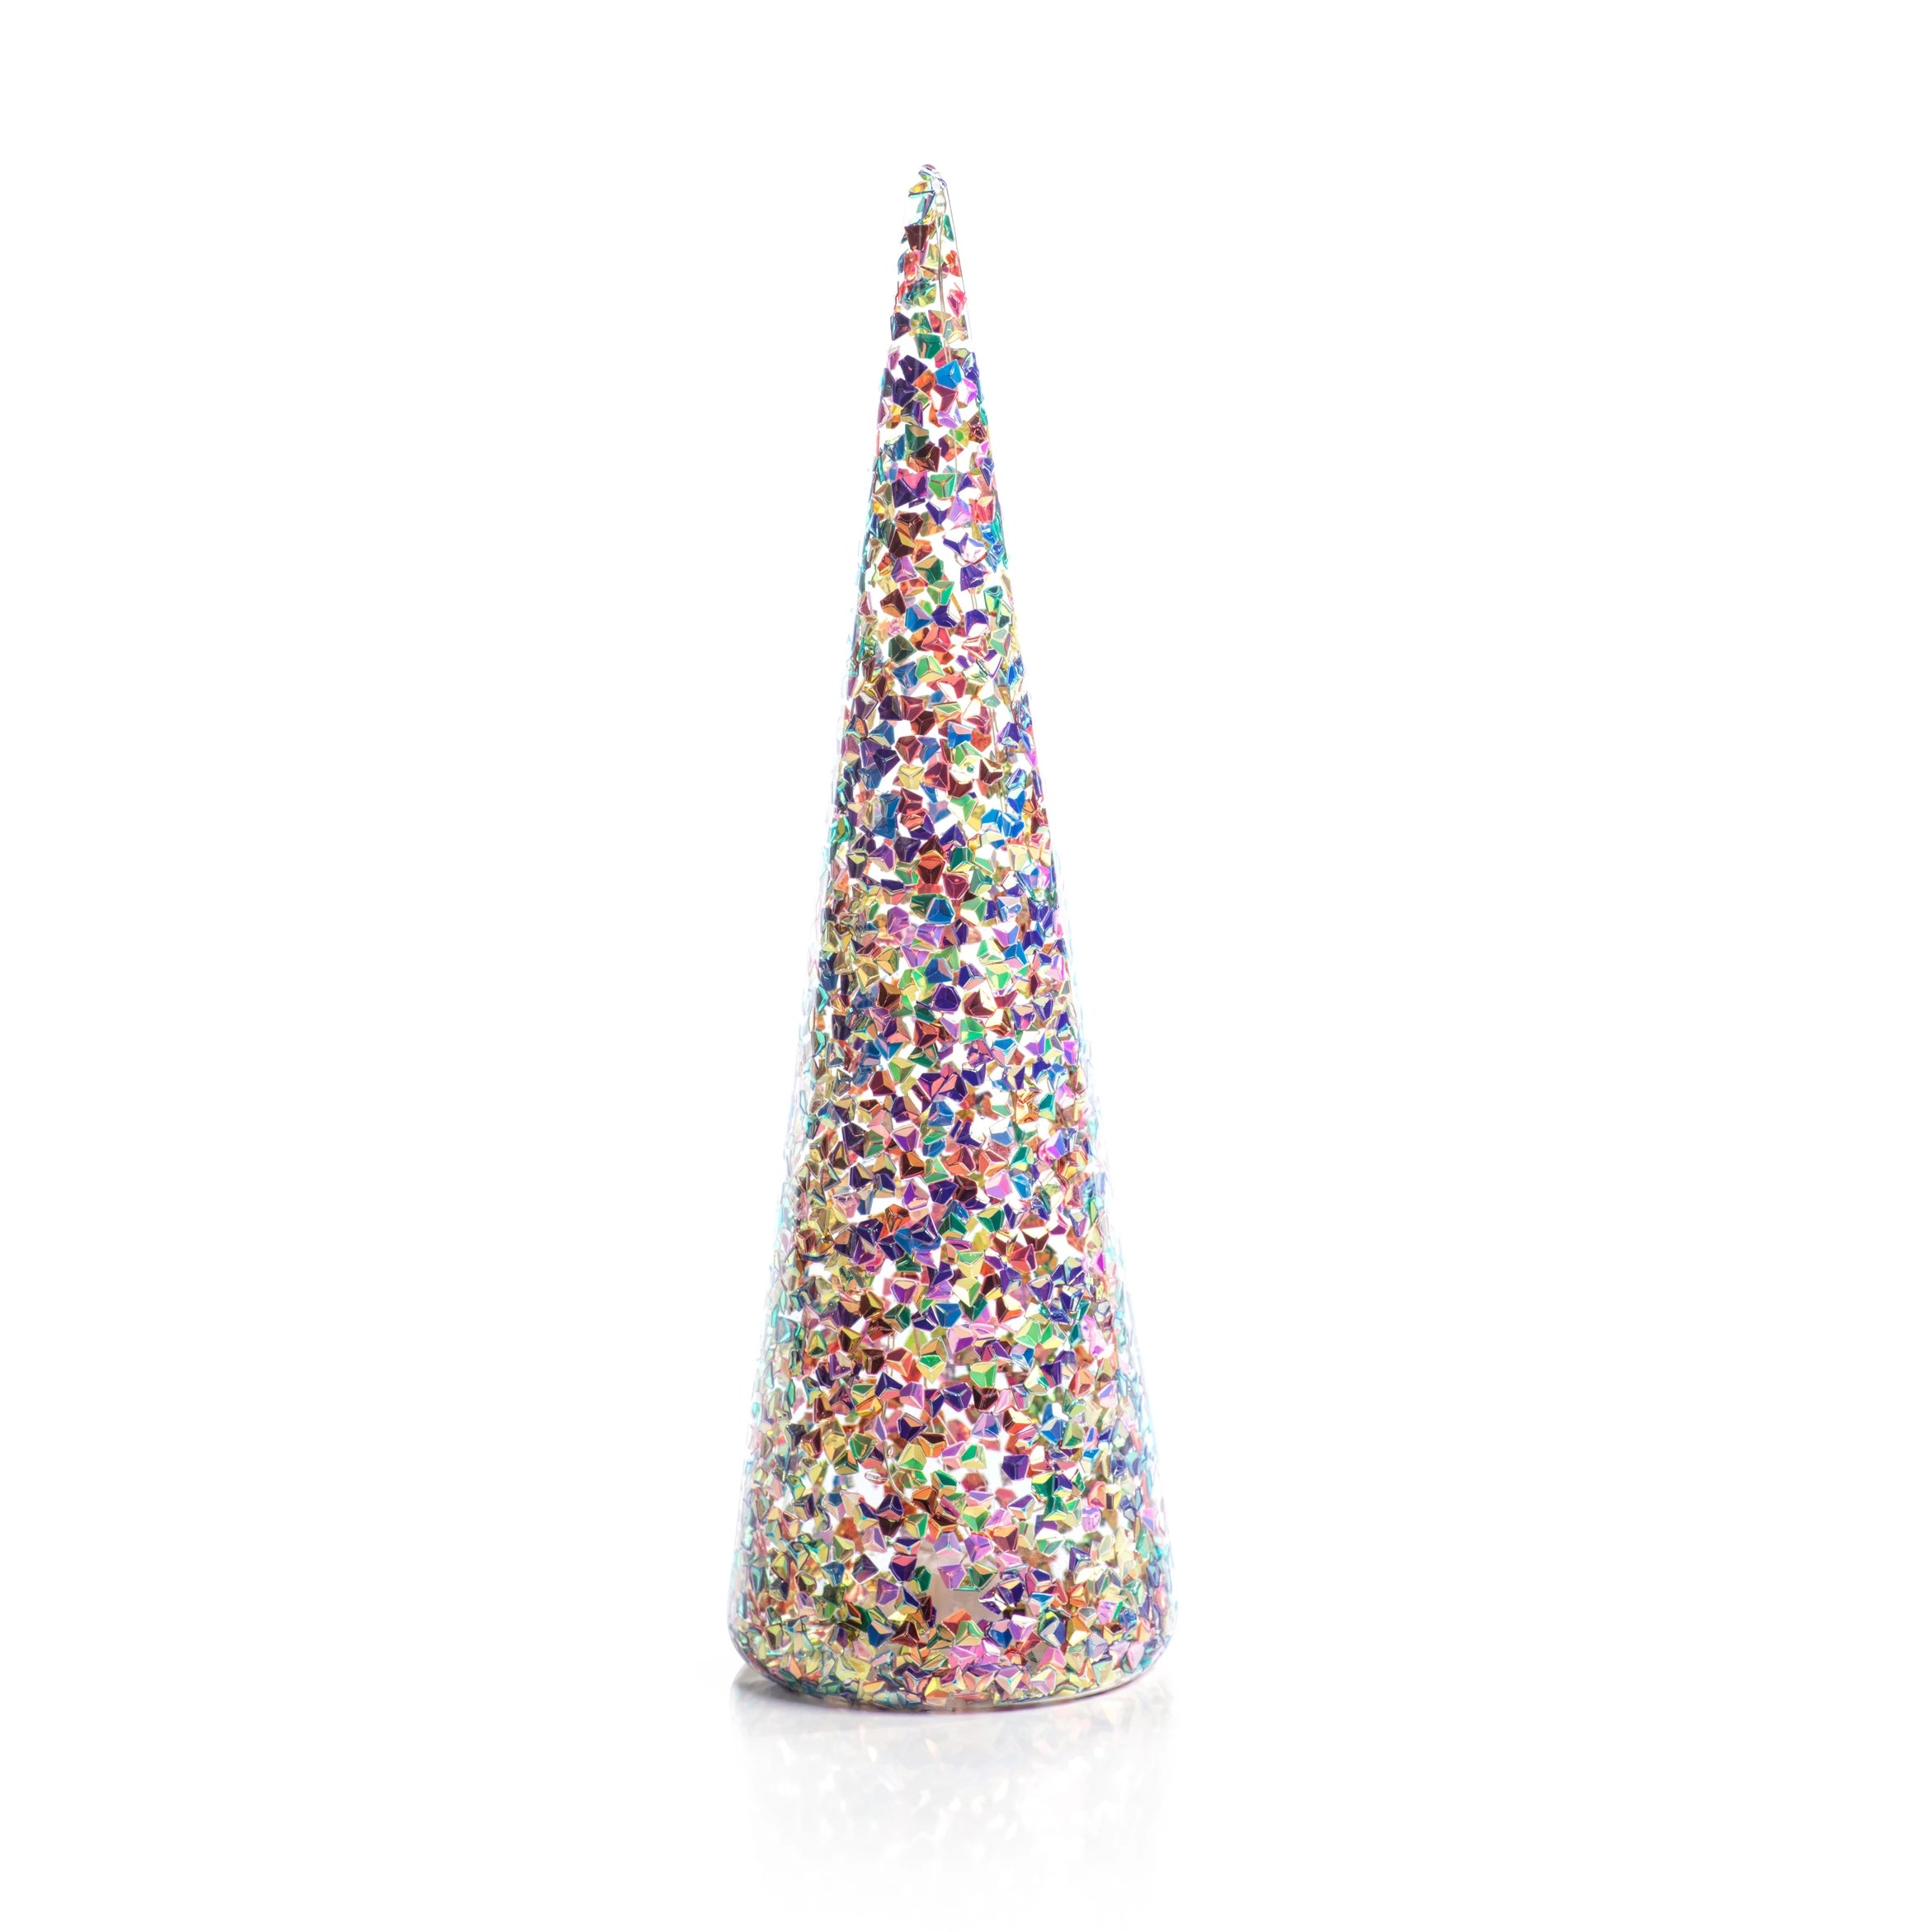 LED Sequin Tree - Multicolor - CARLYLE AVENUE